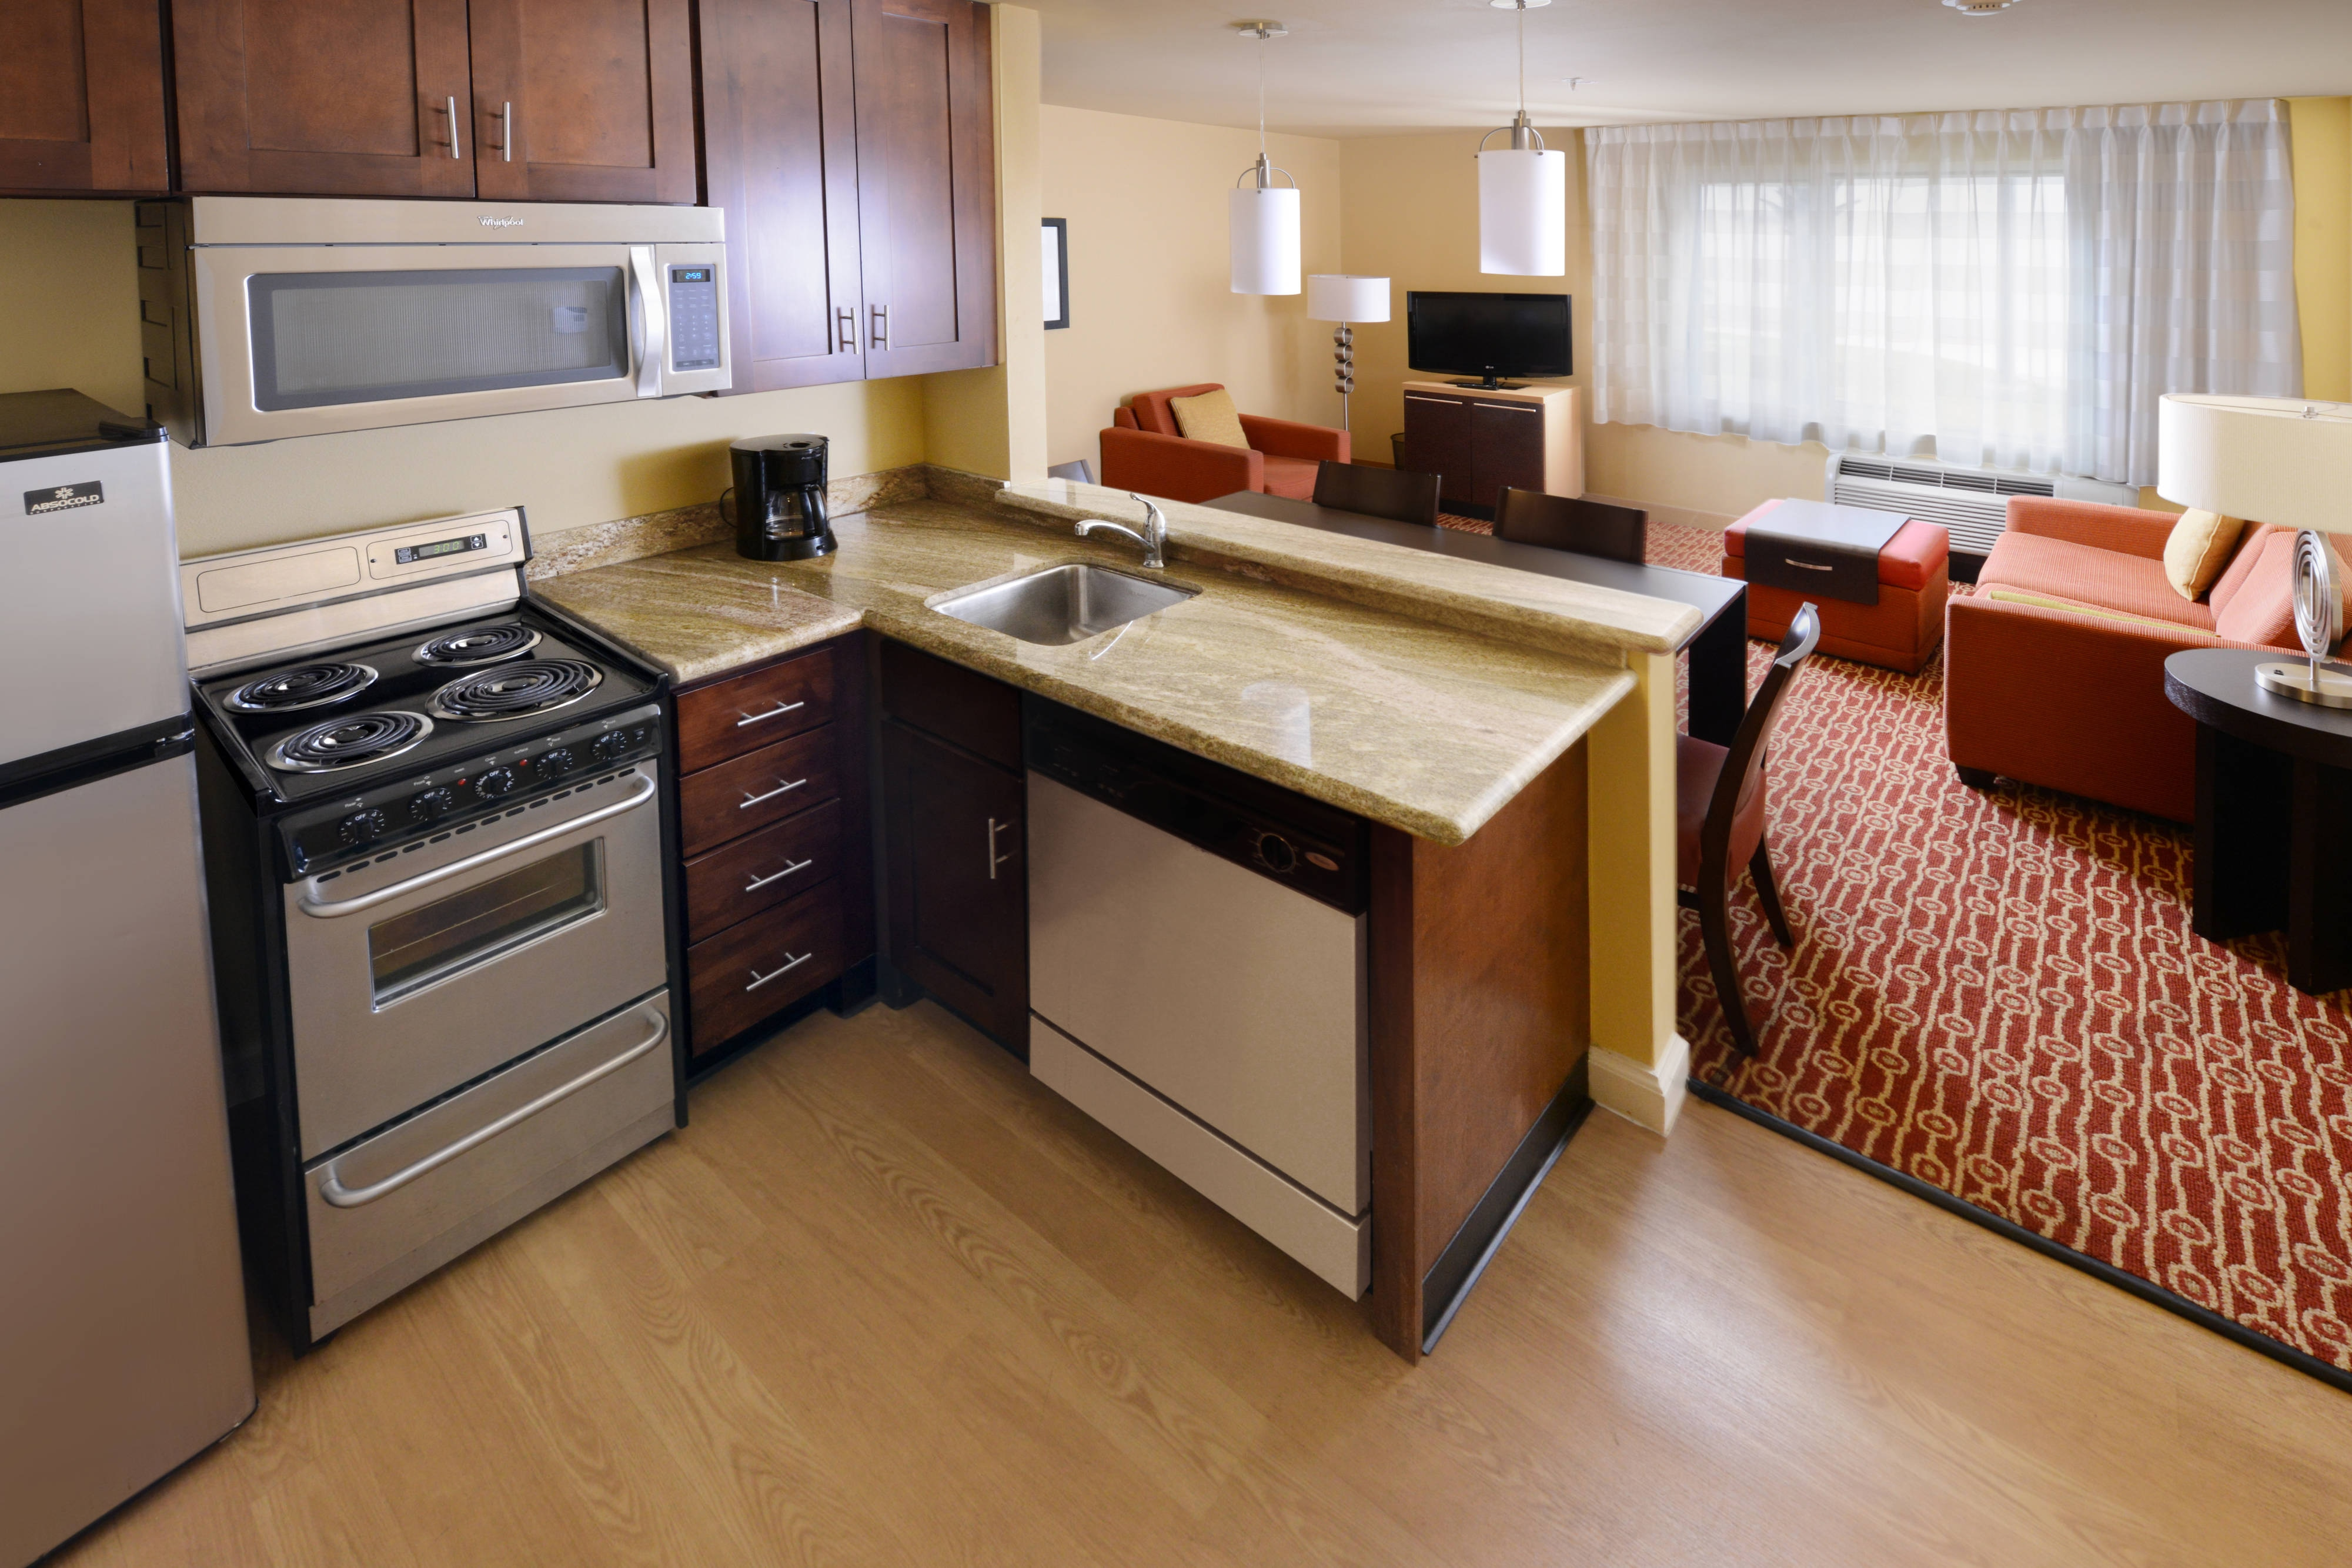 Extended Stay Hotels On Galveston Island Towneplace